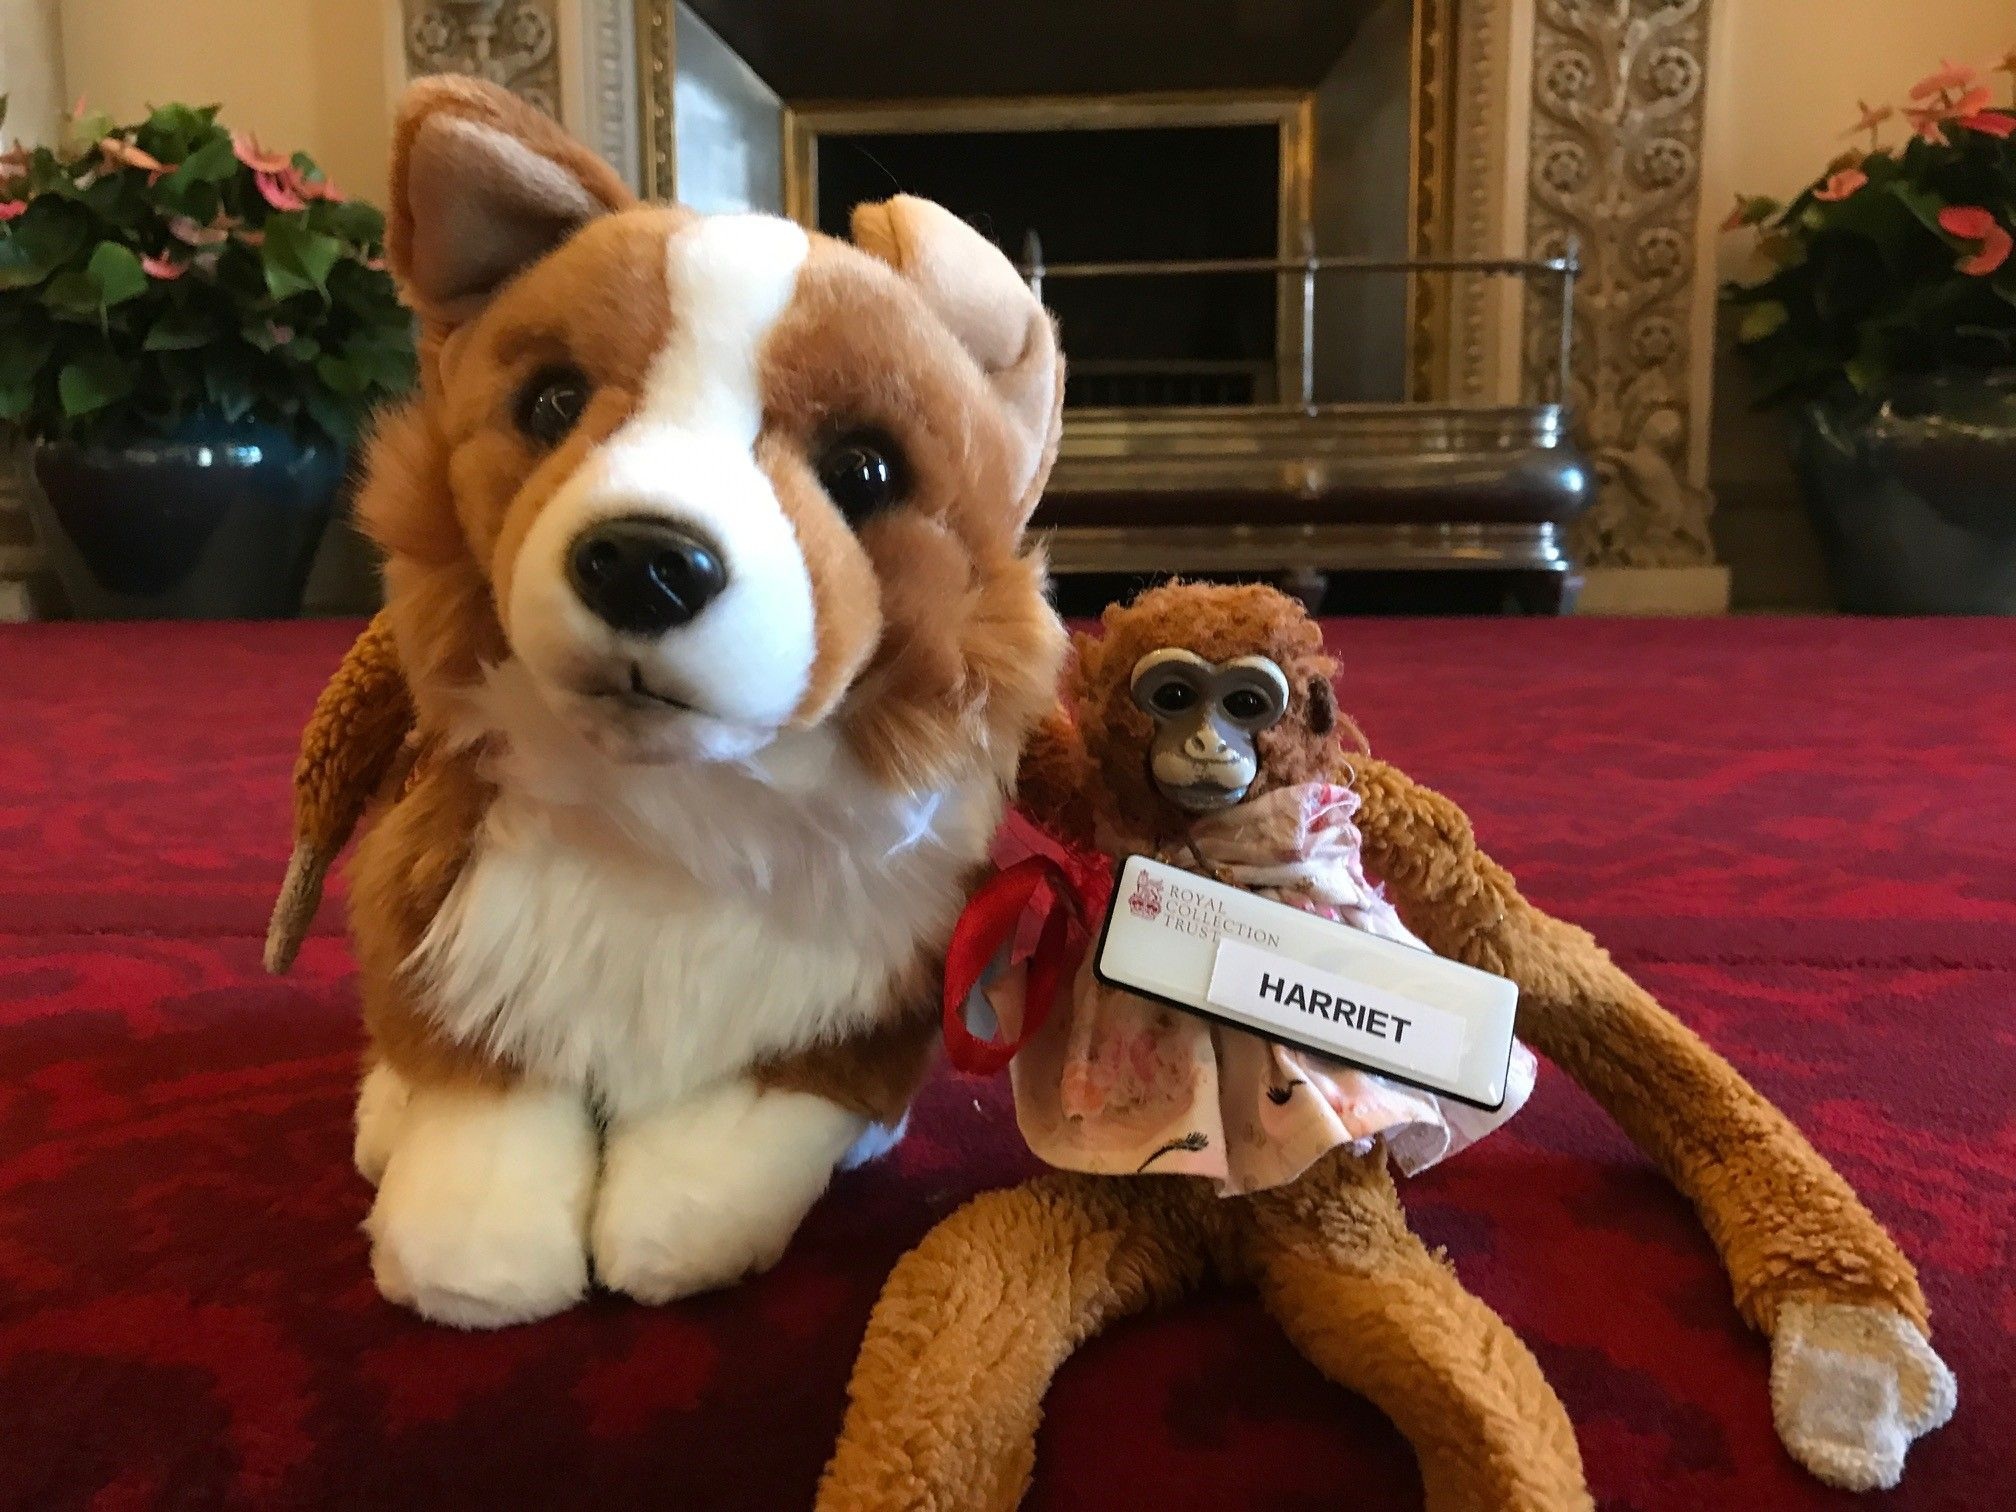 Buckingham Palace Staff Return a Child's Toy Monkey, After Giving It the Royal Treatment